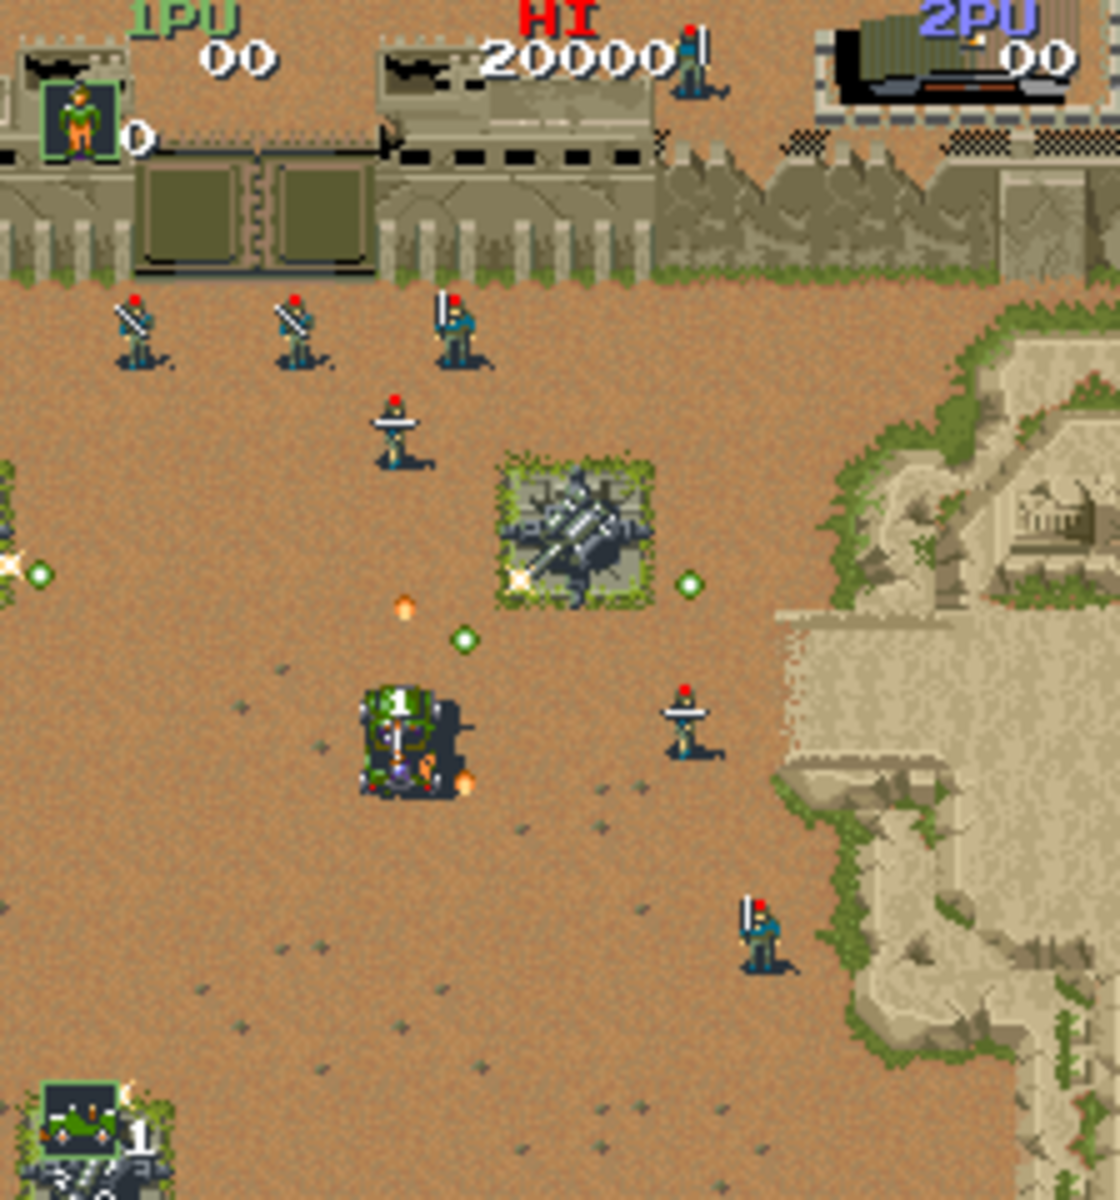 Take out the enemy soldiers in Konami's Jackal